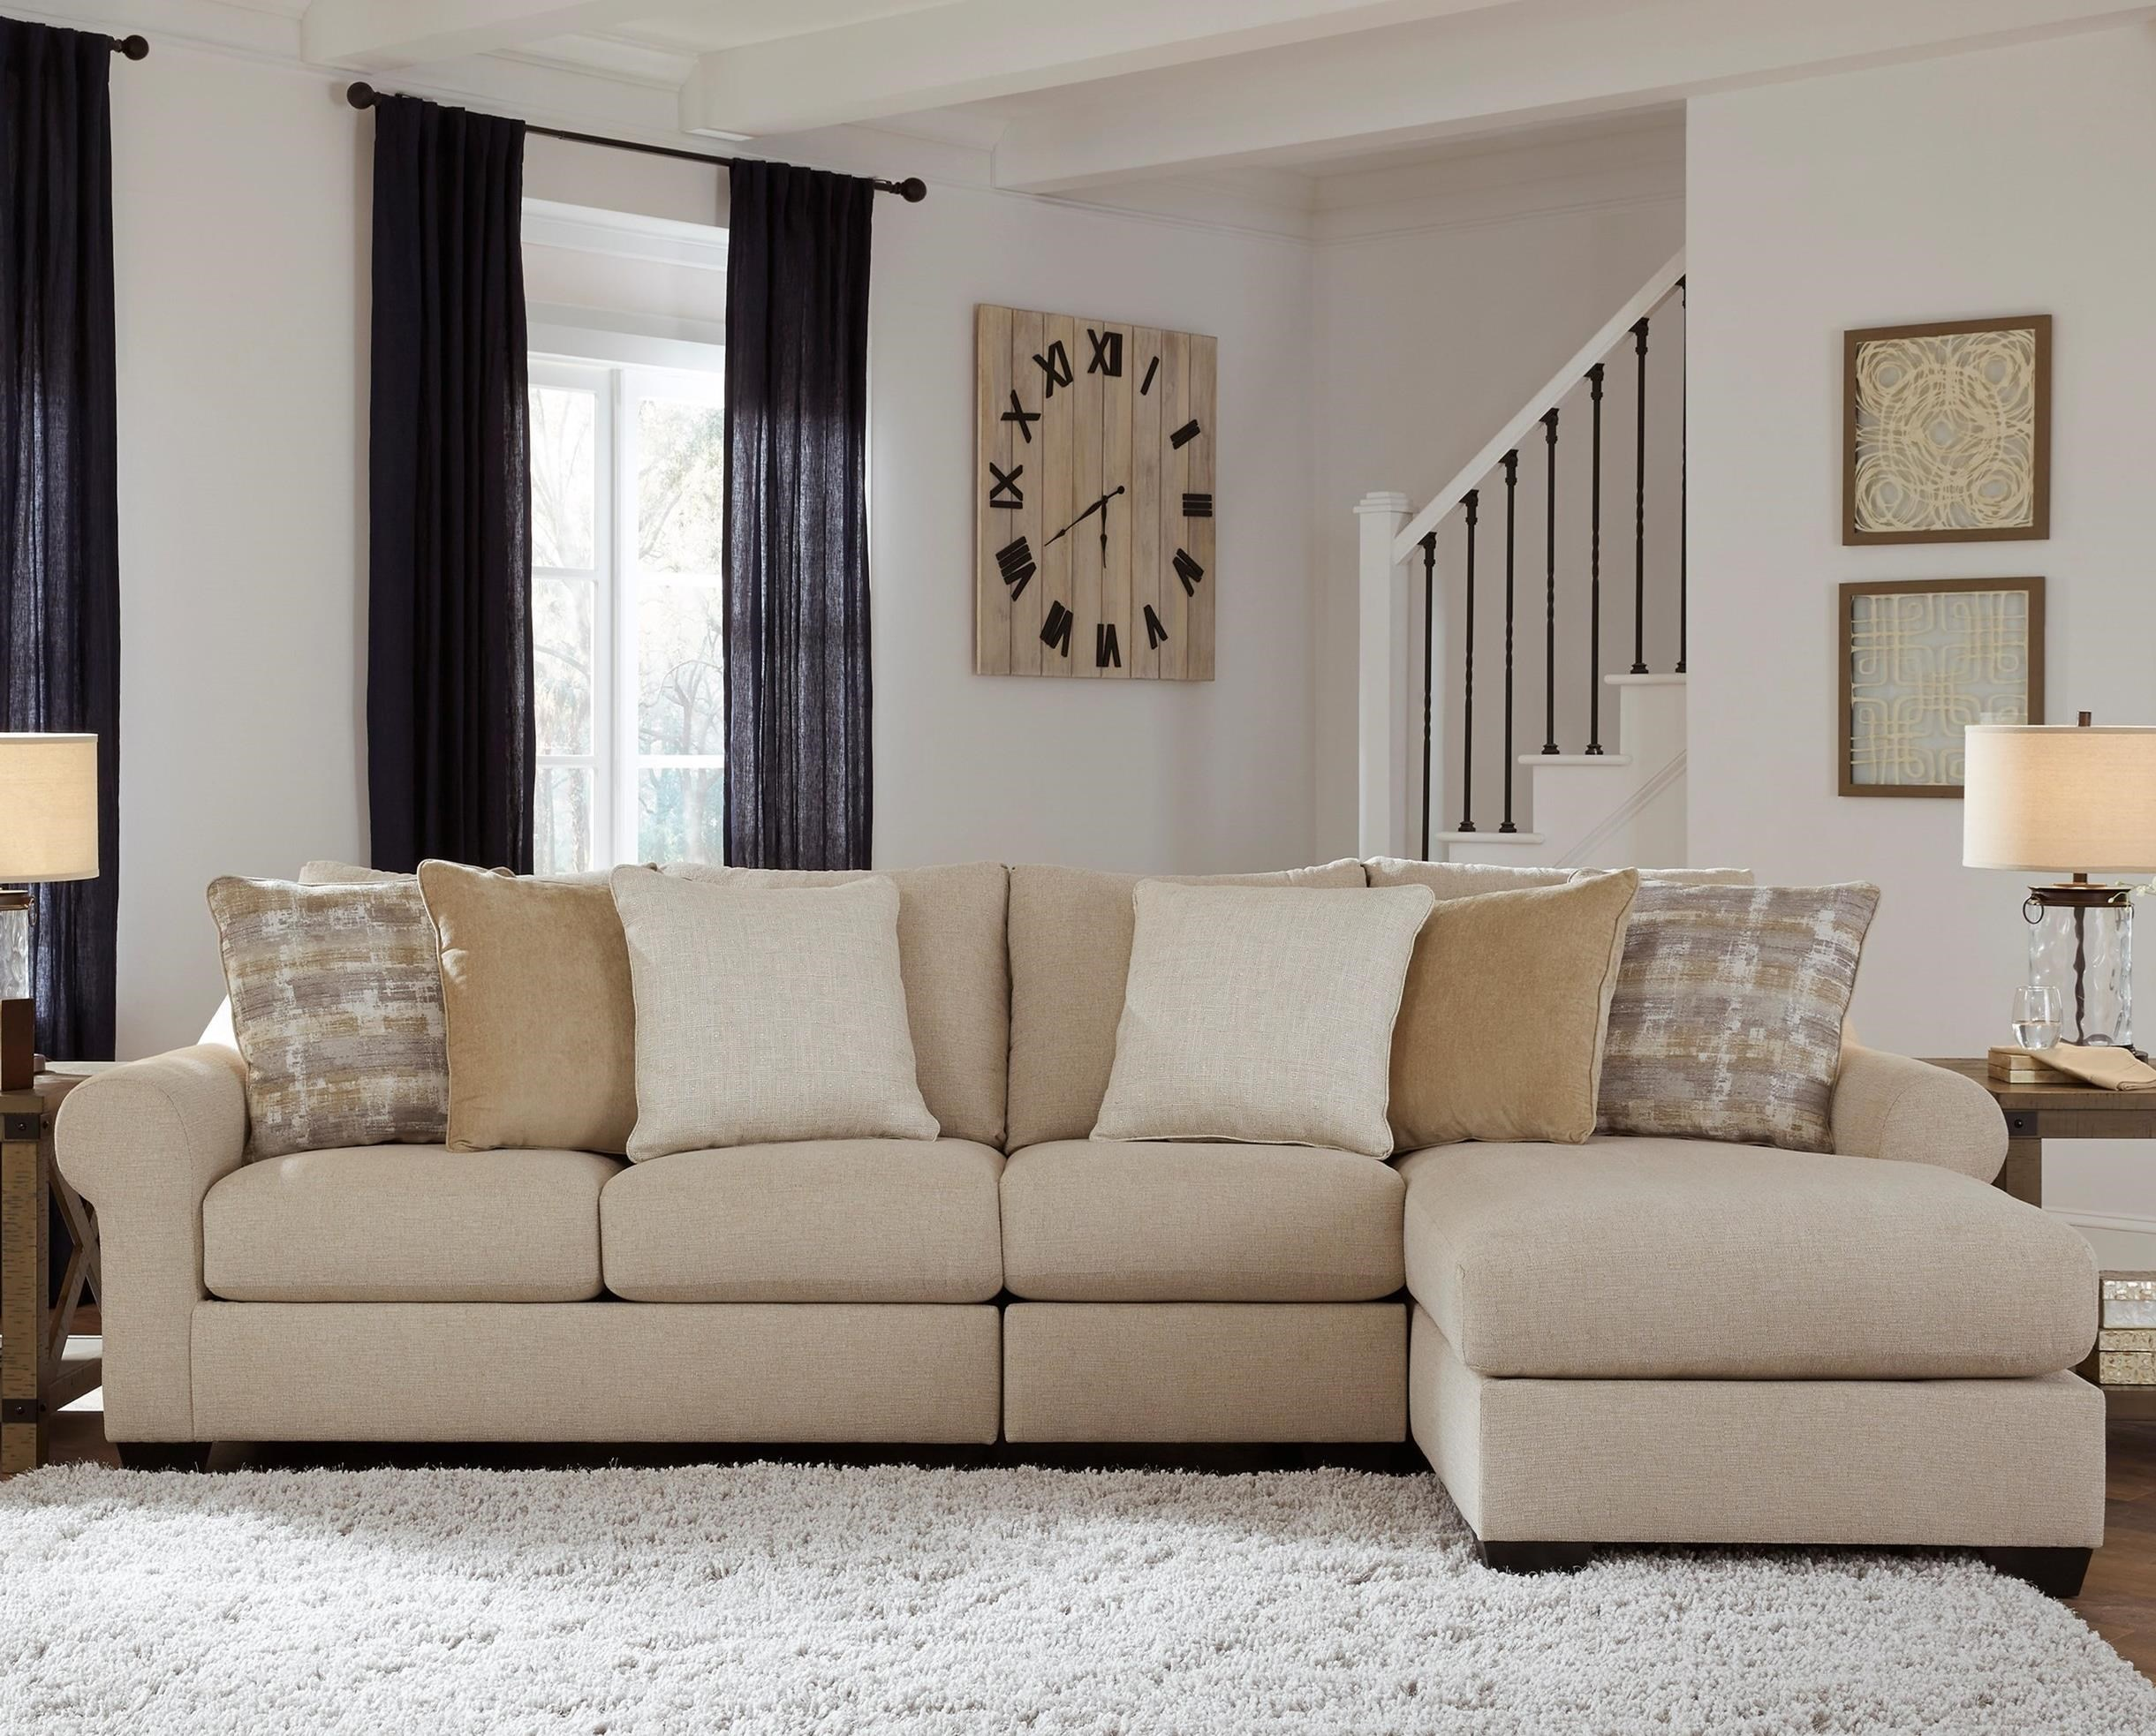 Ingleside 3-Piece Sofa Chaise by Benchcraft at Walker's Furniture